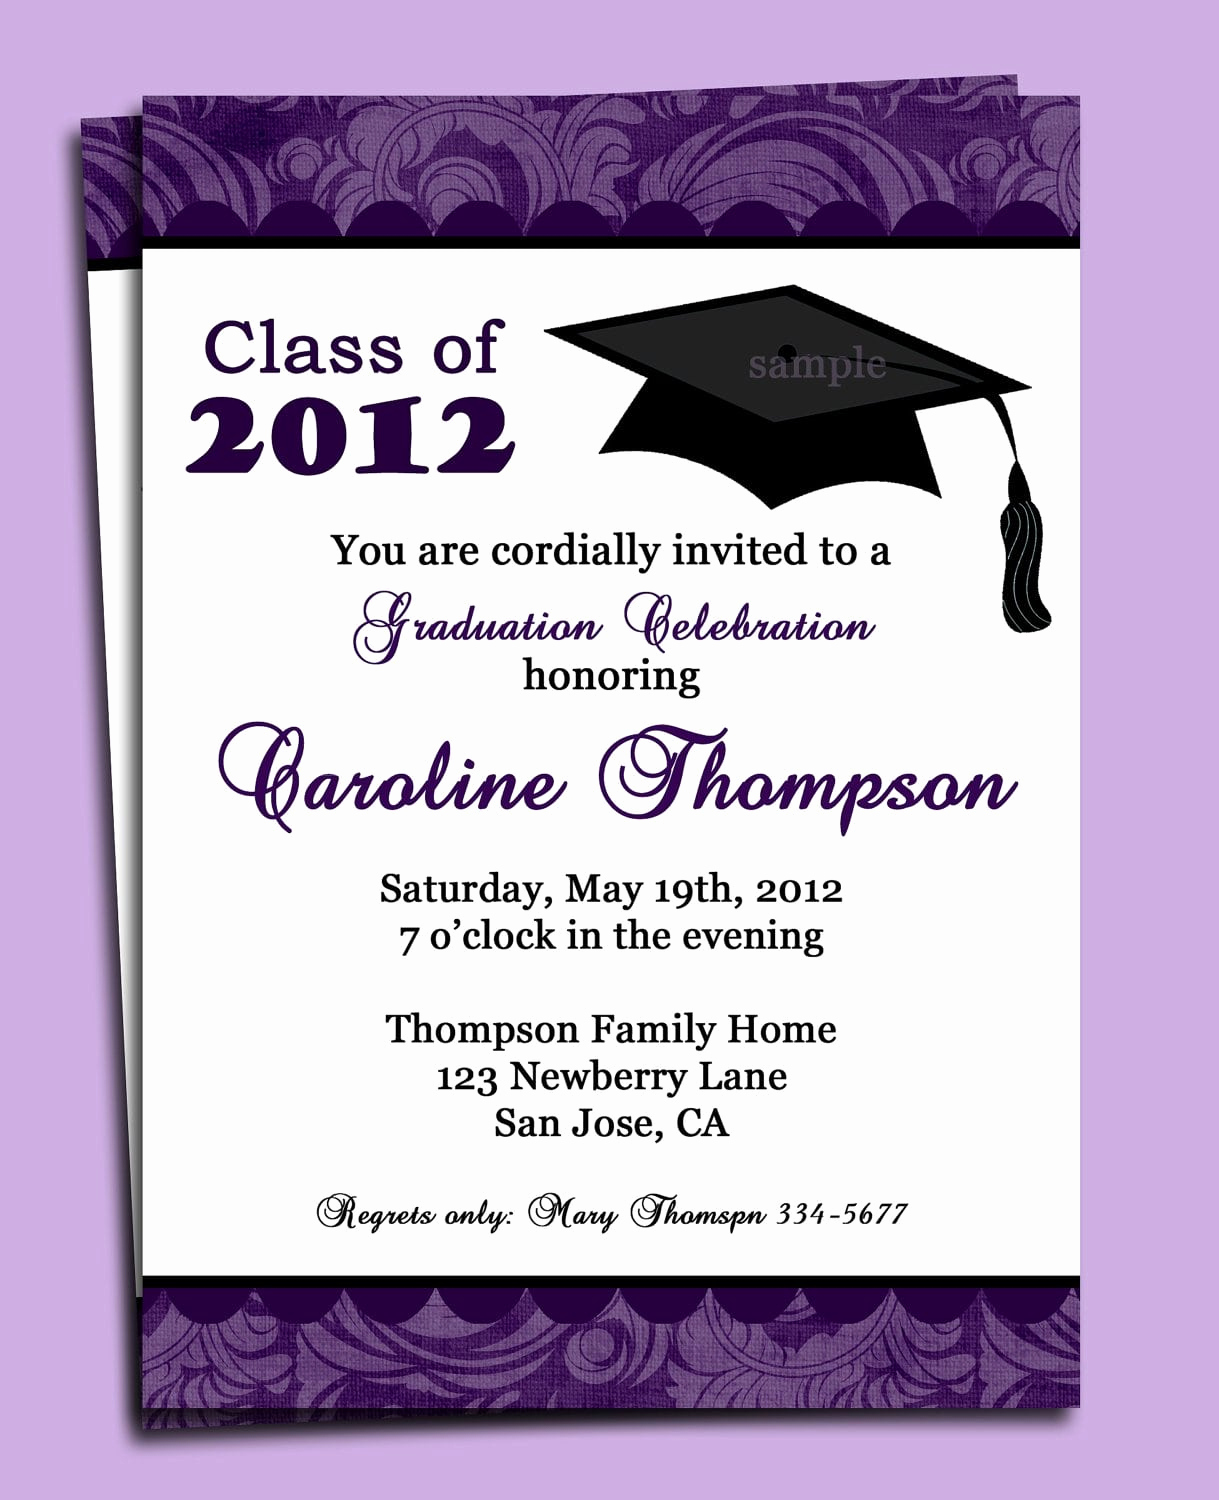 Graduation Ceremony Invitation Templates Free Unique Sample Invitation for Graduation Party